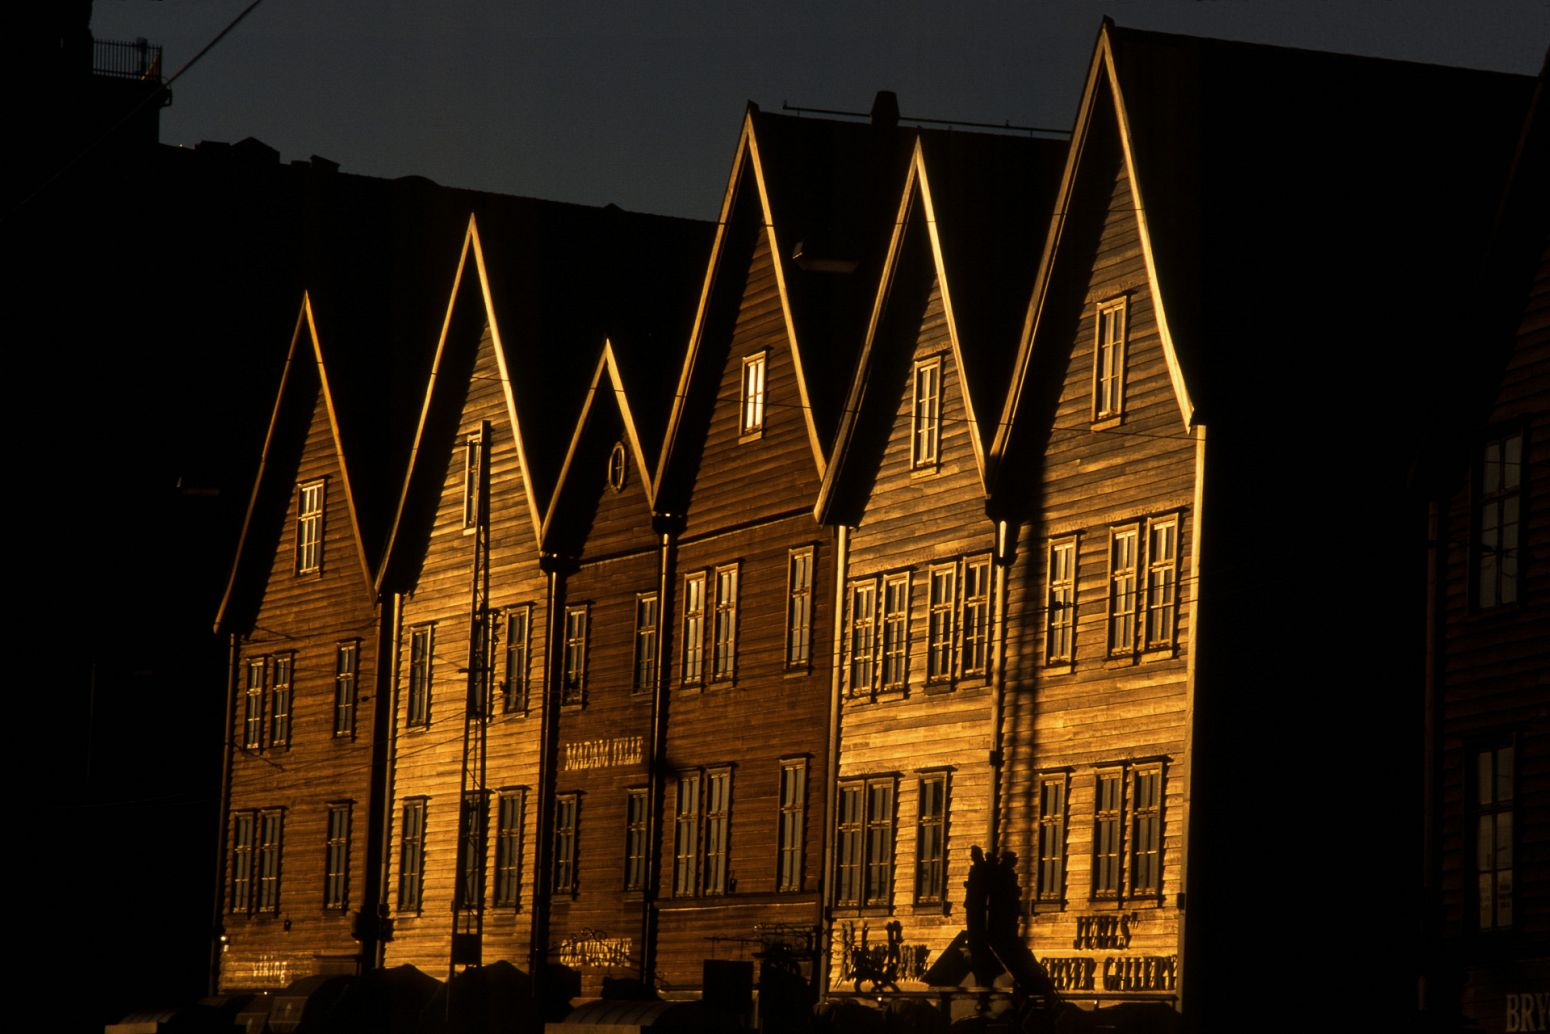 Old wood buildings in Bryggen, Bergen, Norway